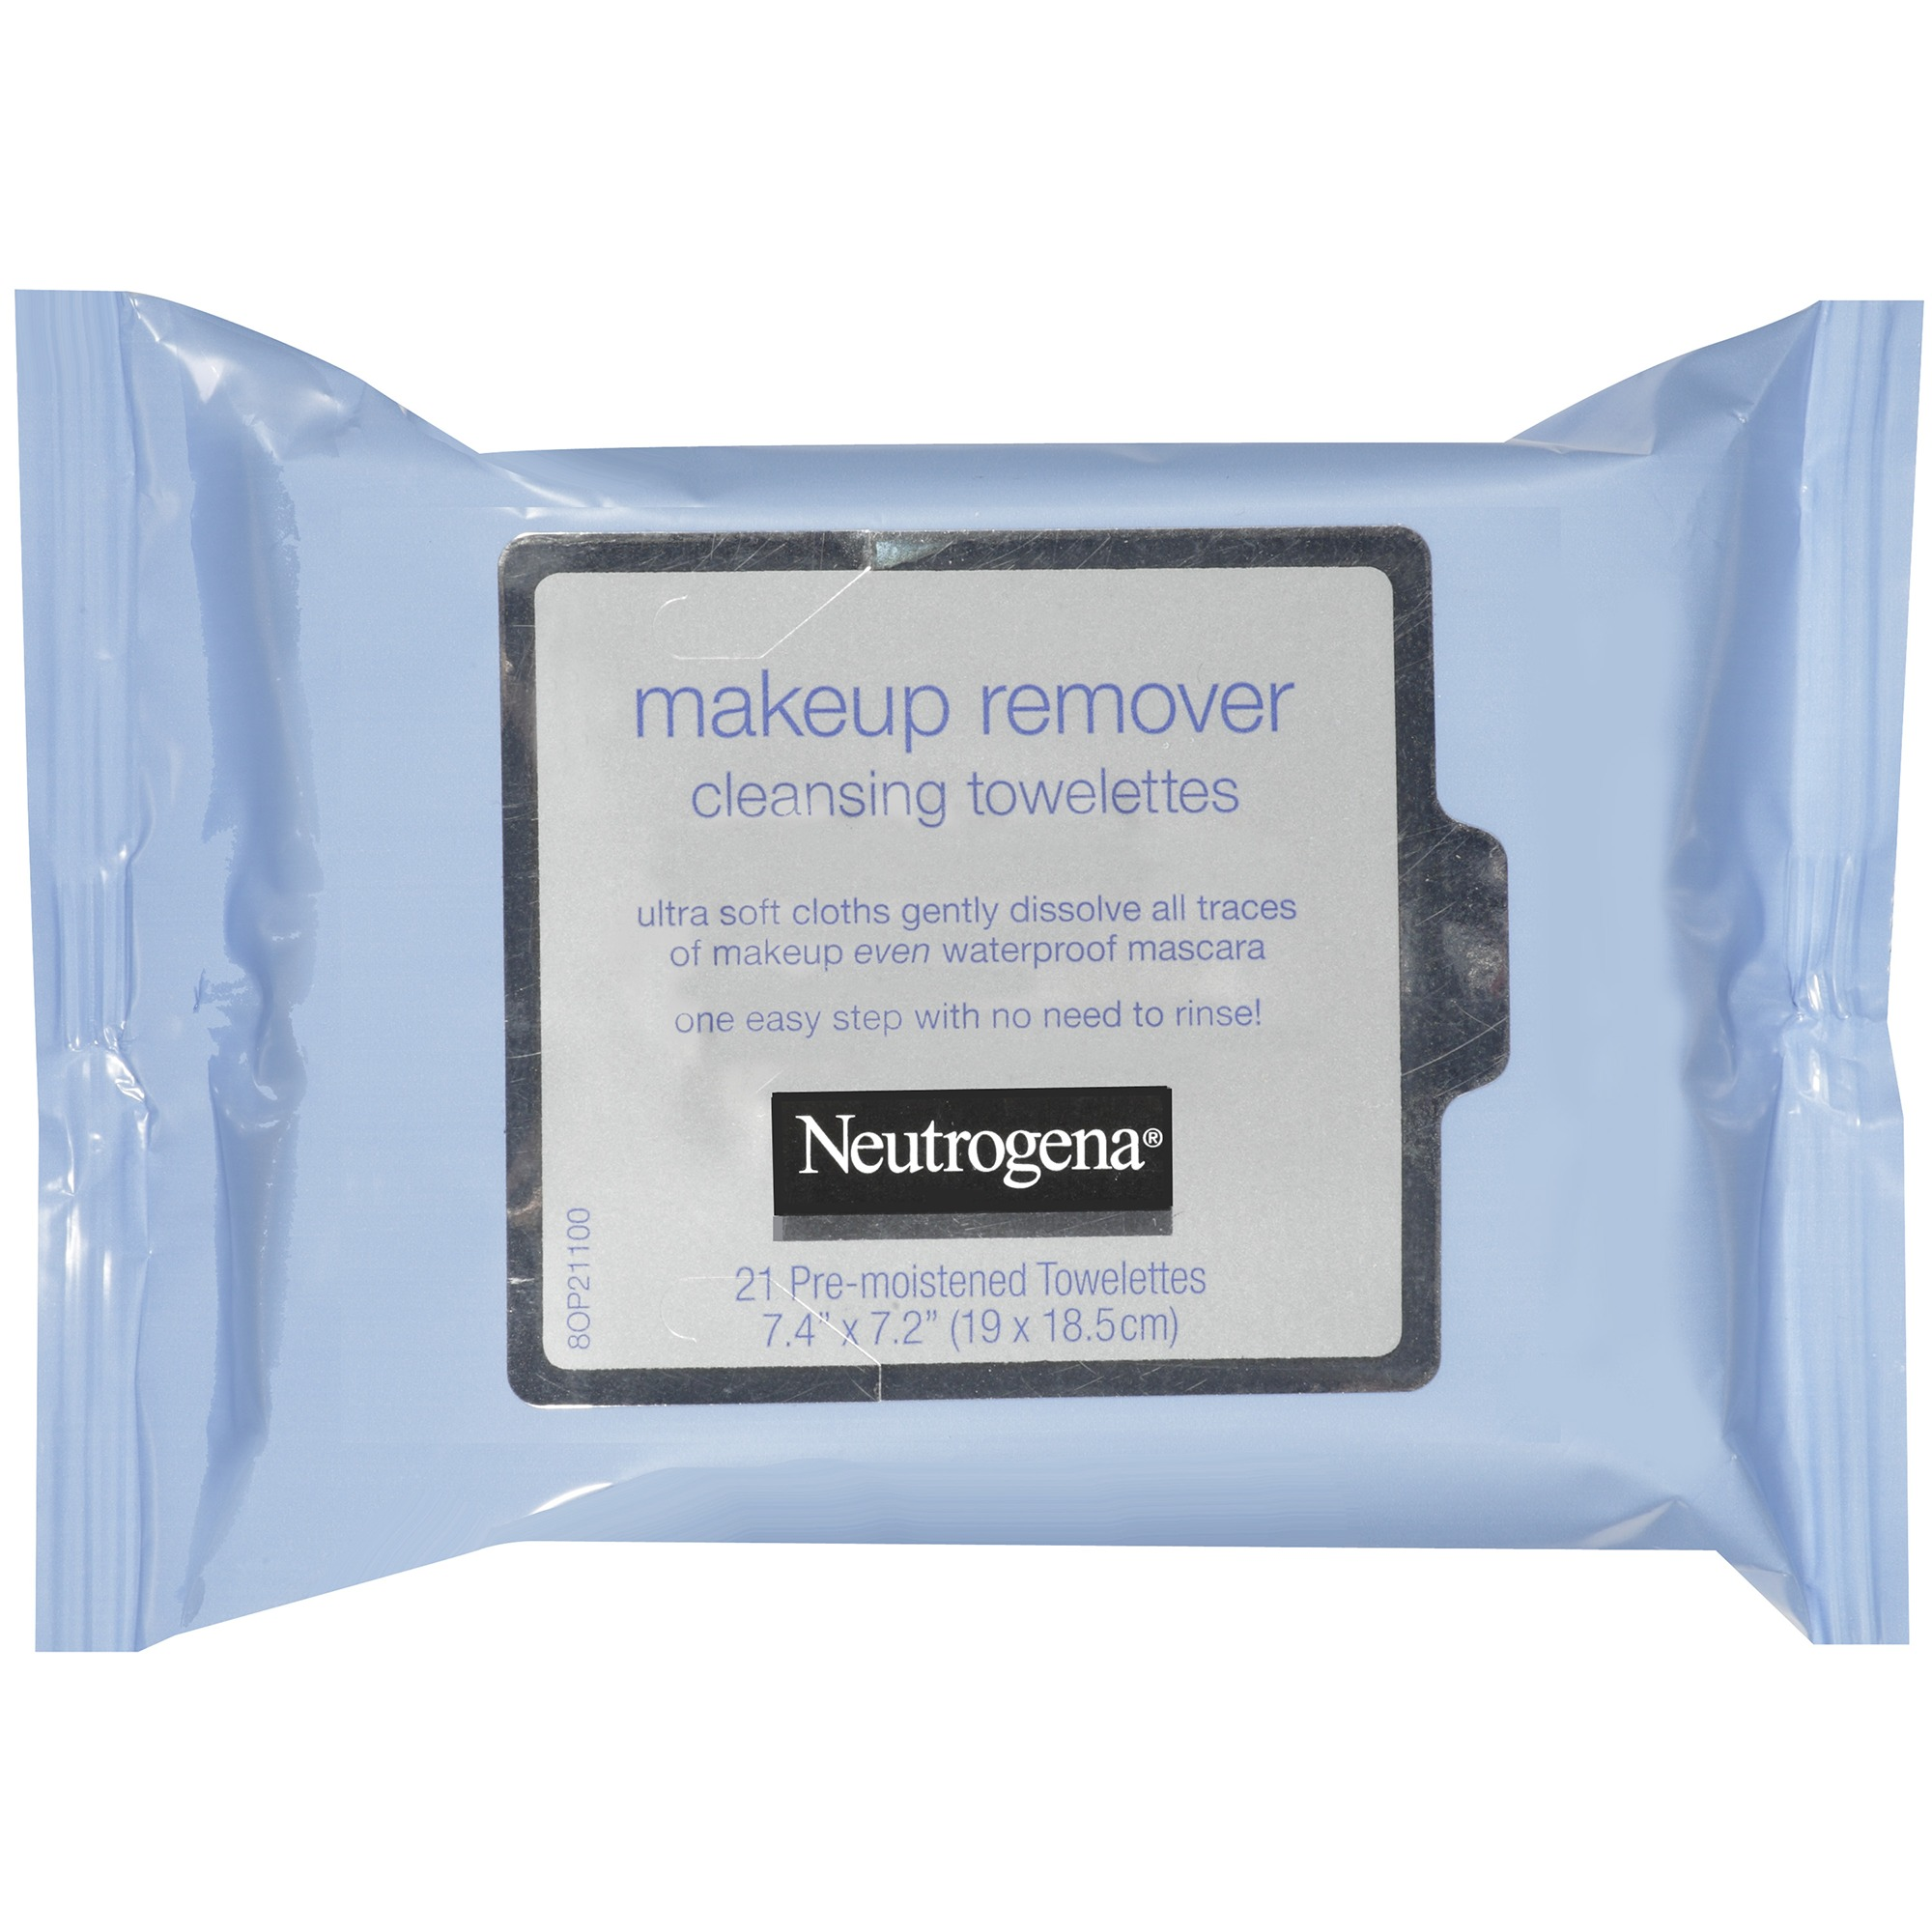 Neutrogena Makeup Remover Cleansing Towelettes & Wipes, 21 ...